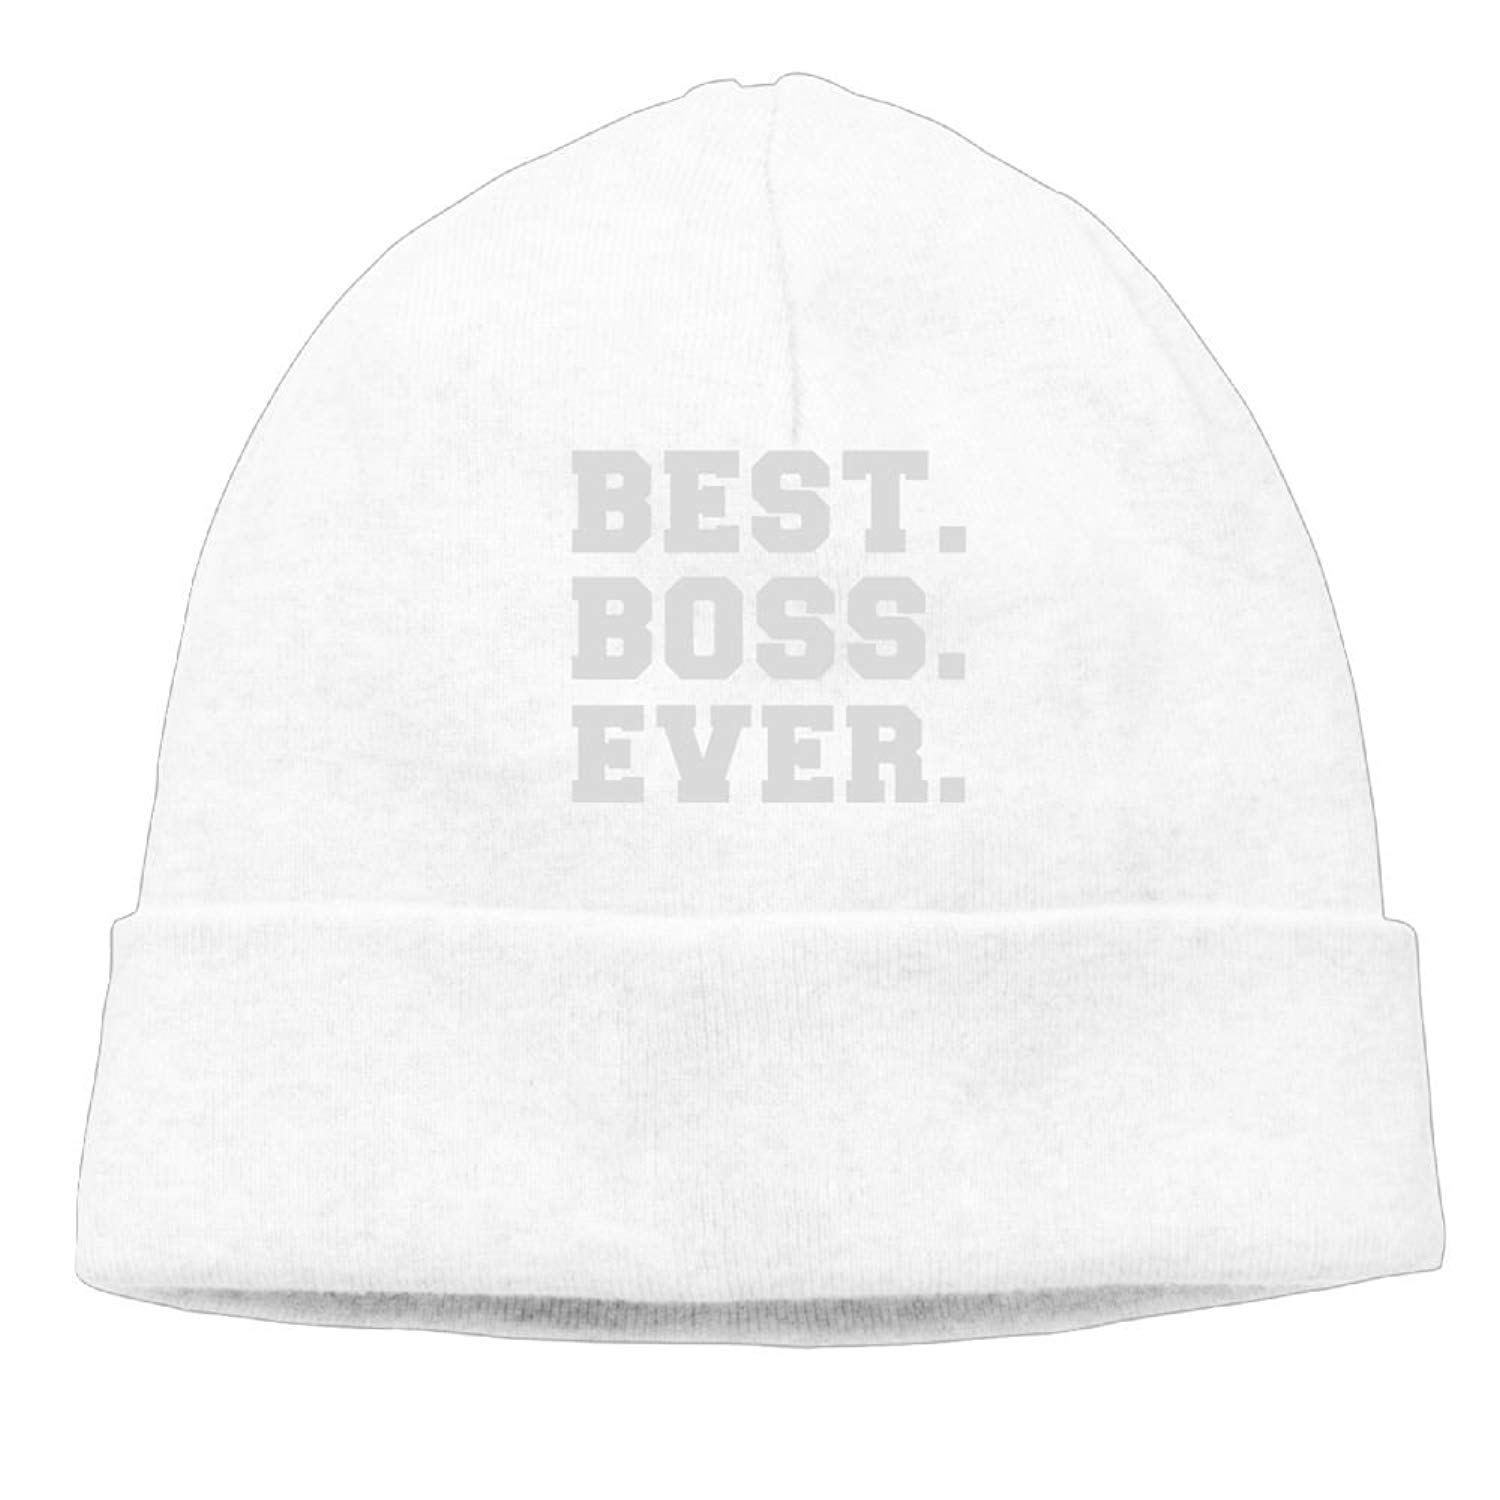 77a1bd556 Cheap Boss Hat, find Boss Hat deals on line at Alibaba.com